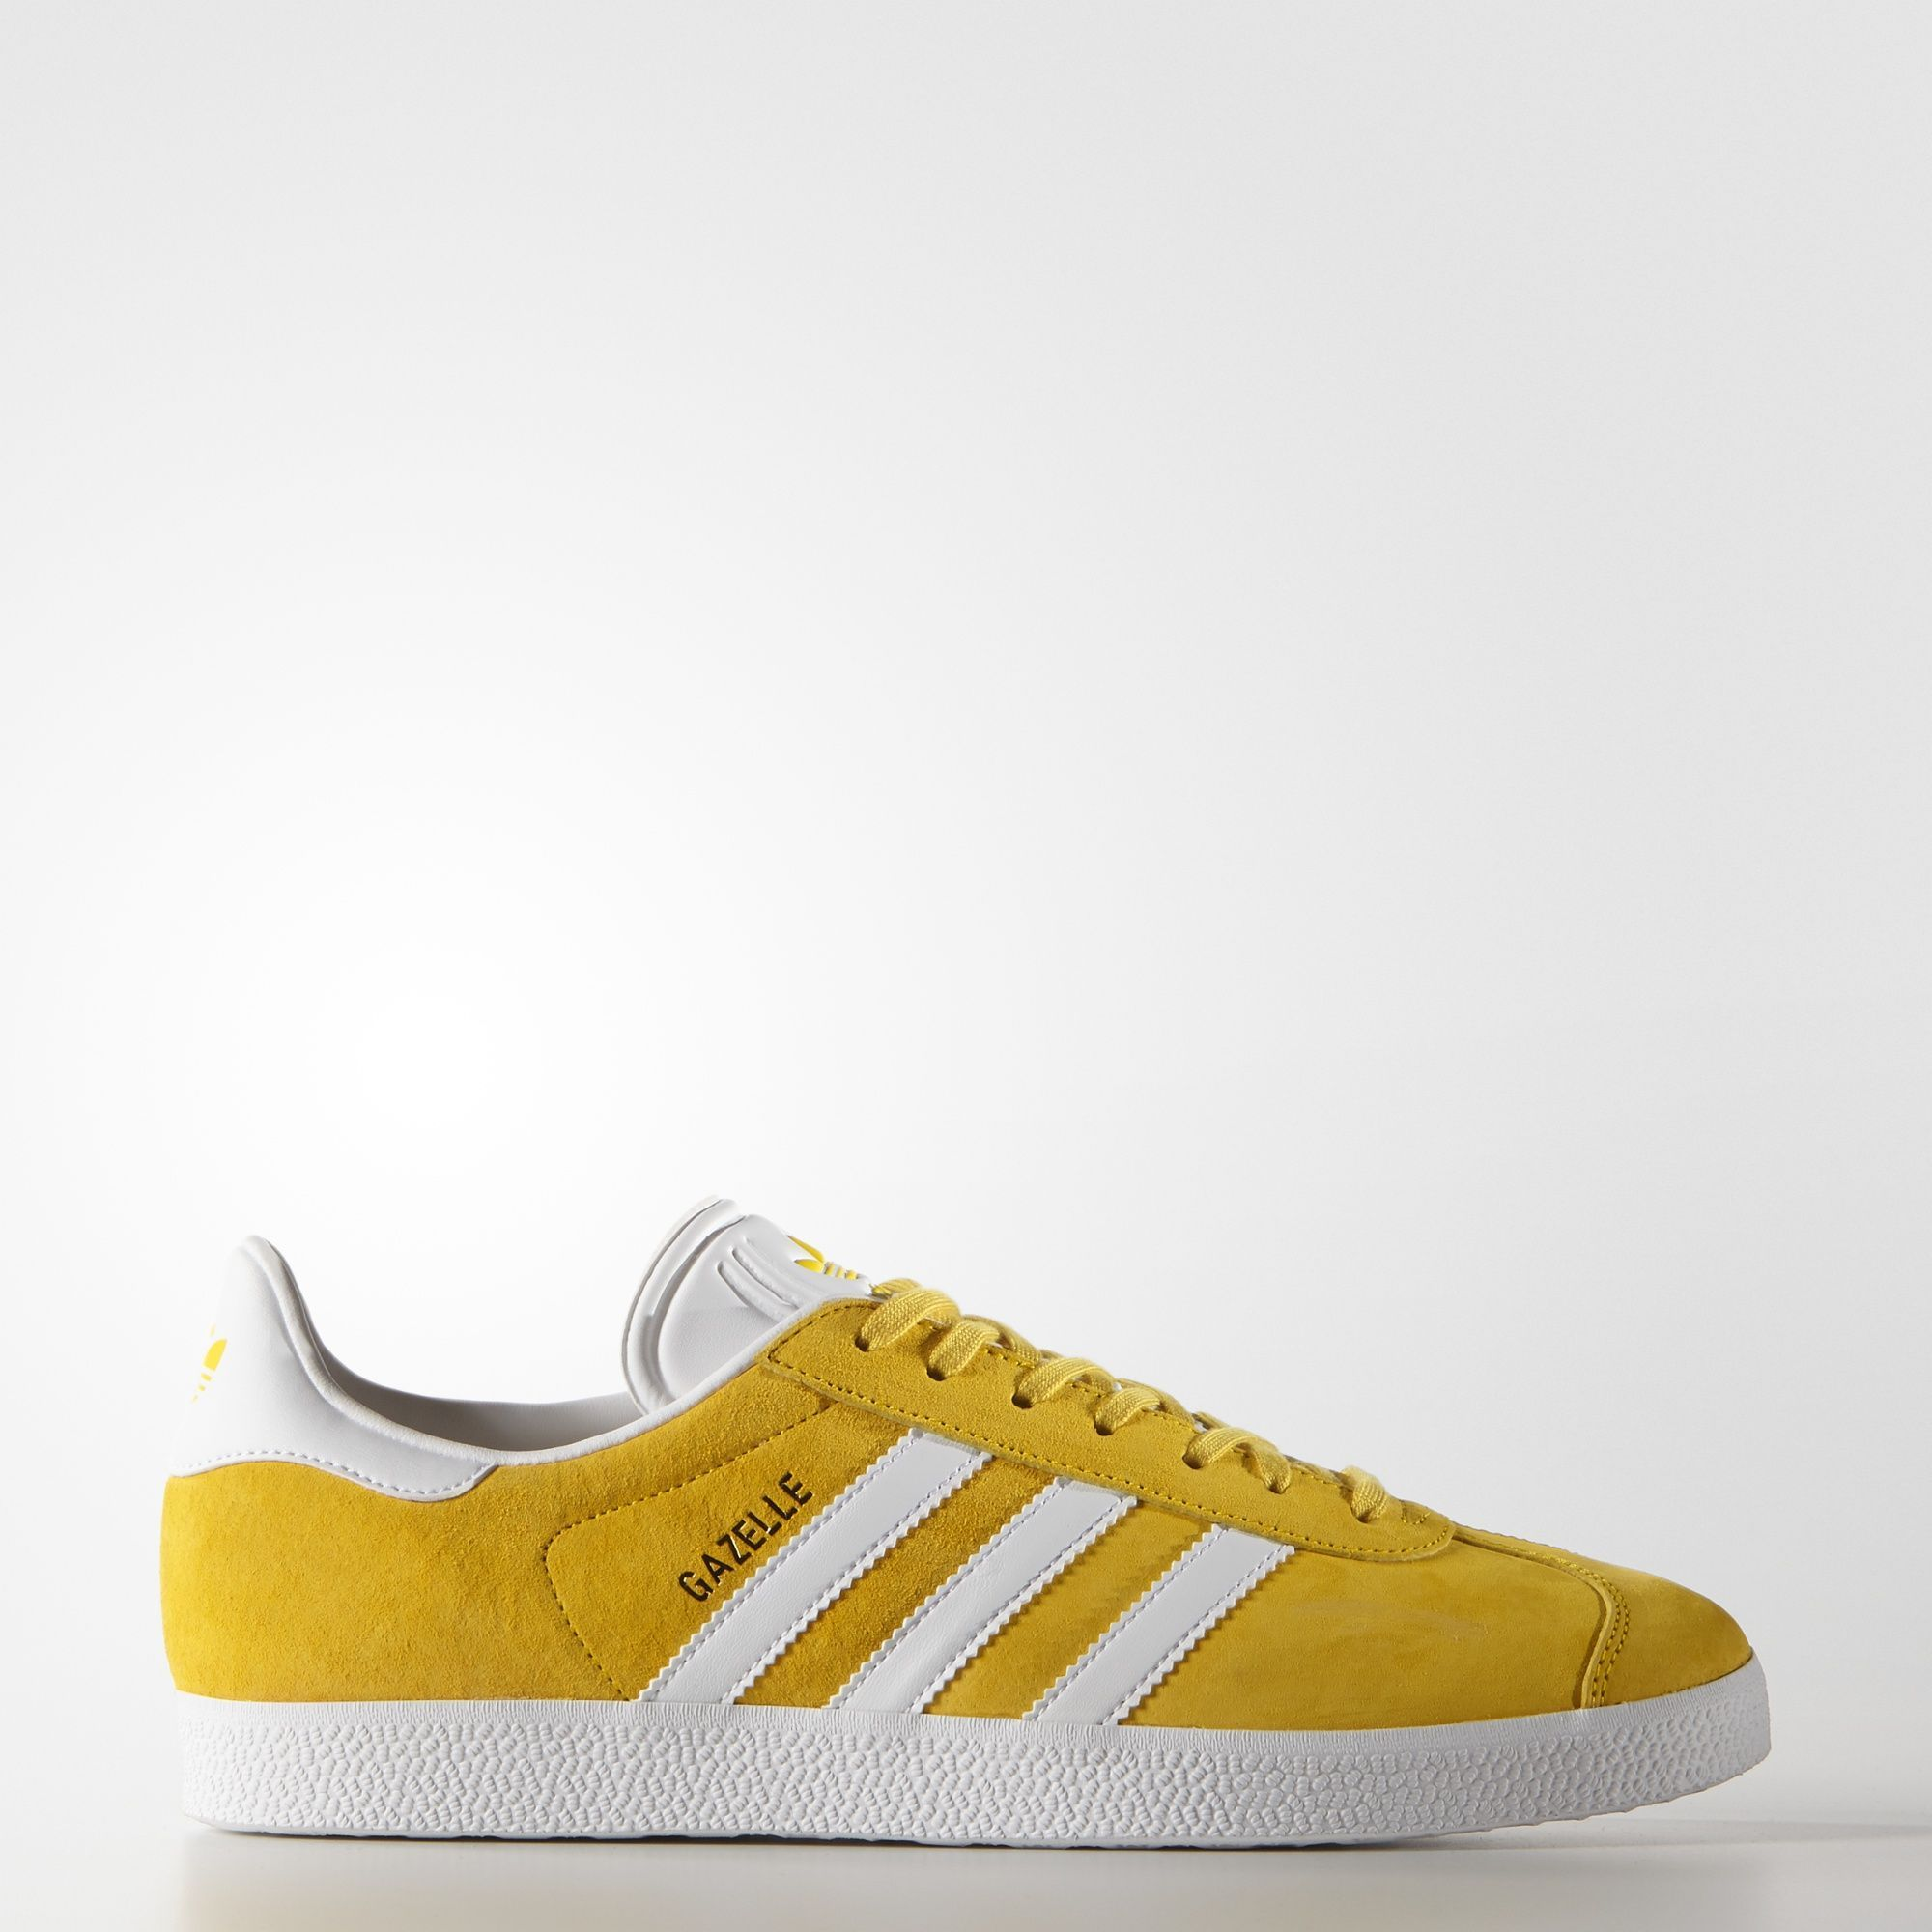 check out cd61a e8d32 adidas - Gazelle Shoes yellow (pinned color) size 8.5